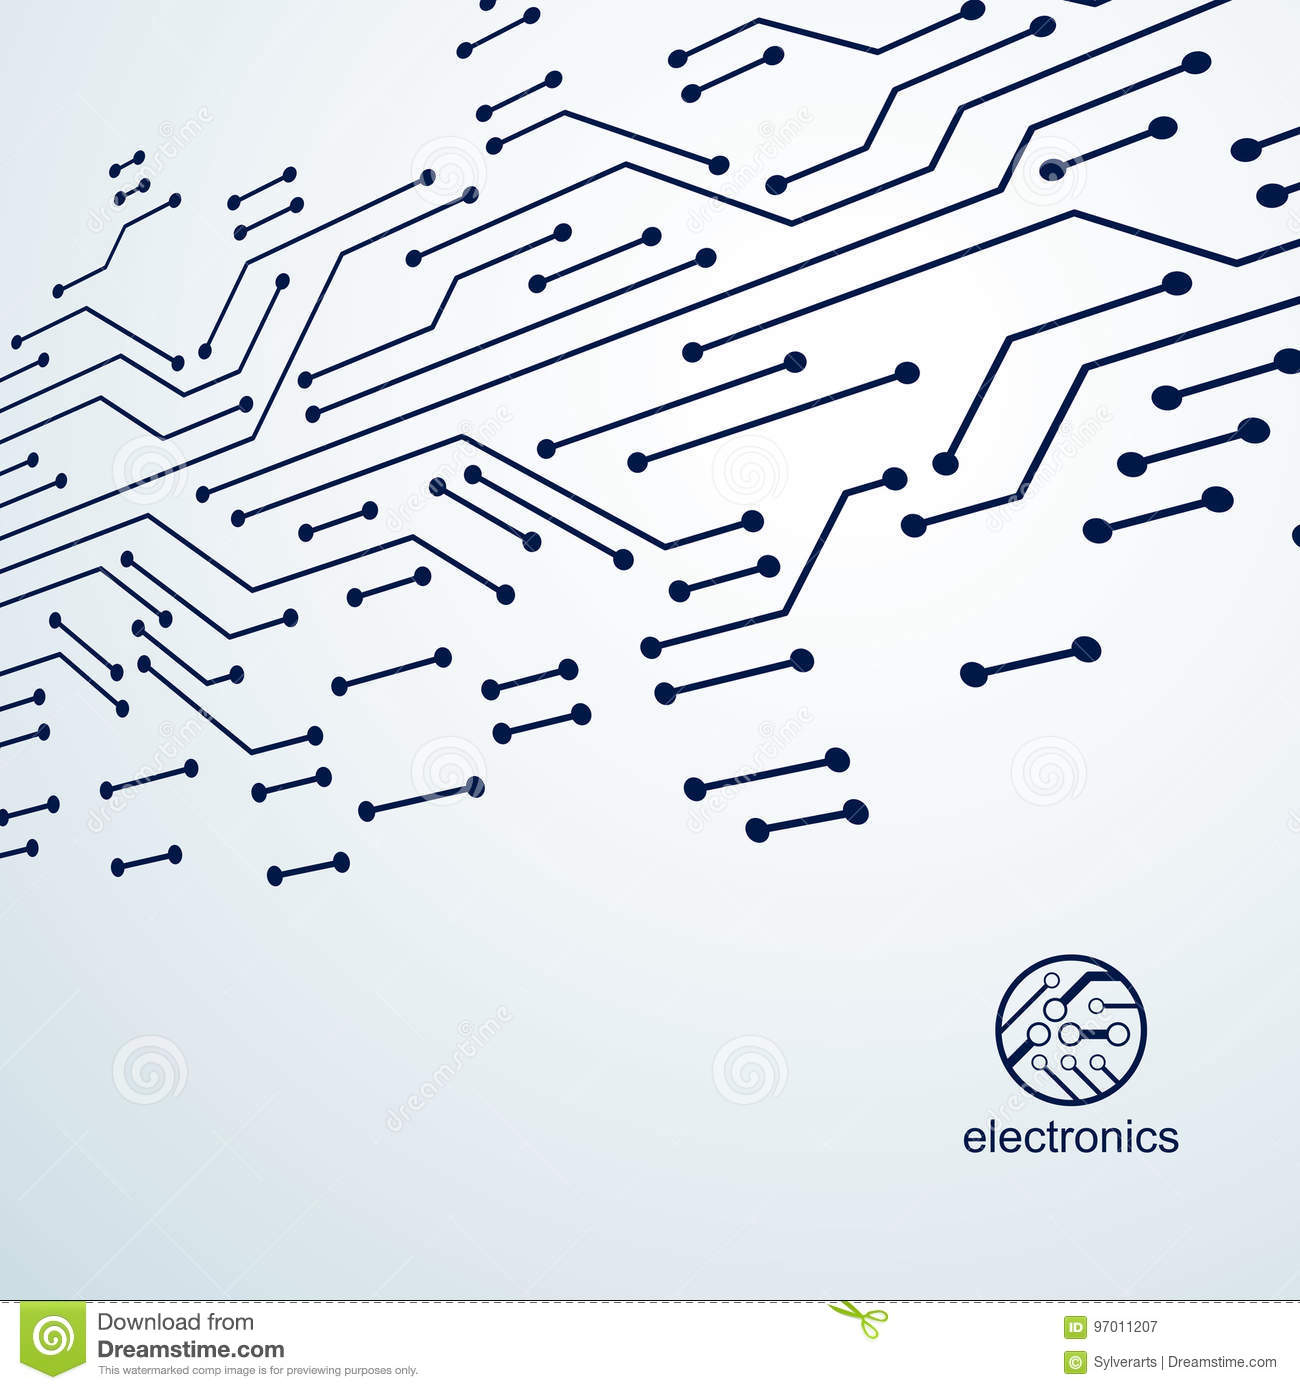 Vector Abstract Computer Circuit Board Illustration Technology Graphic Of Technological Theme And Element With Connections Electronics Web Design Modern Communication